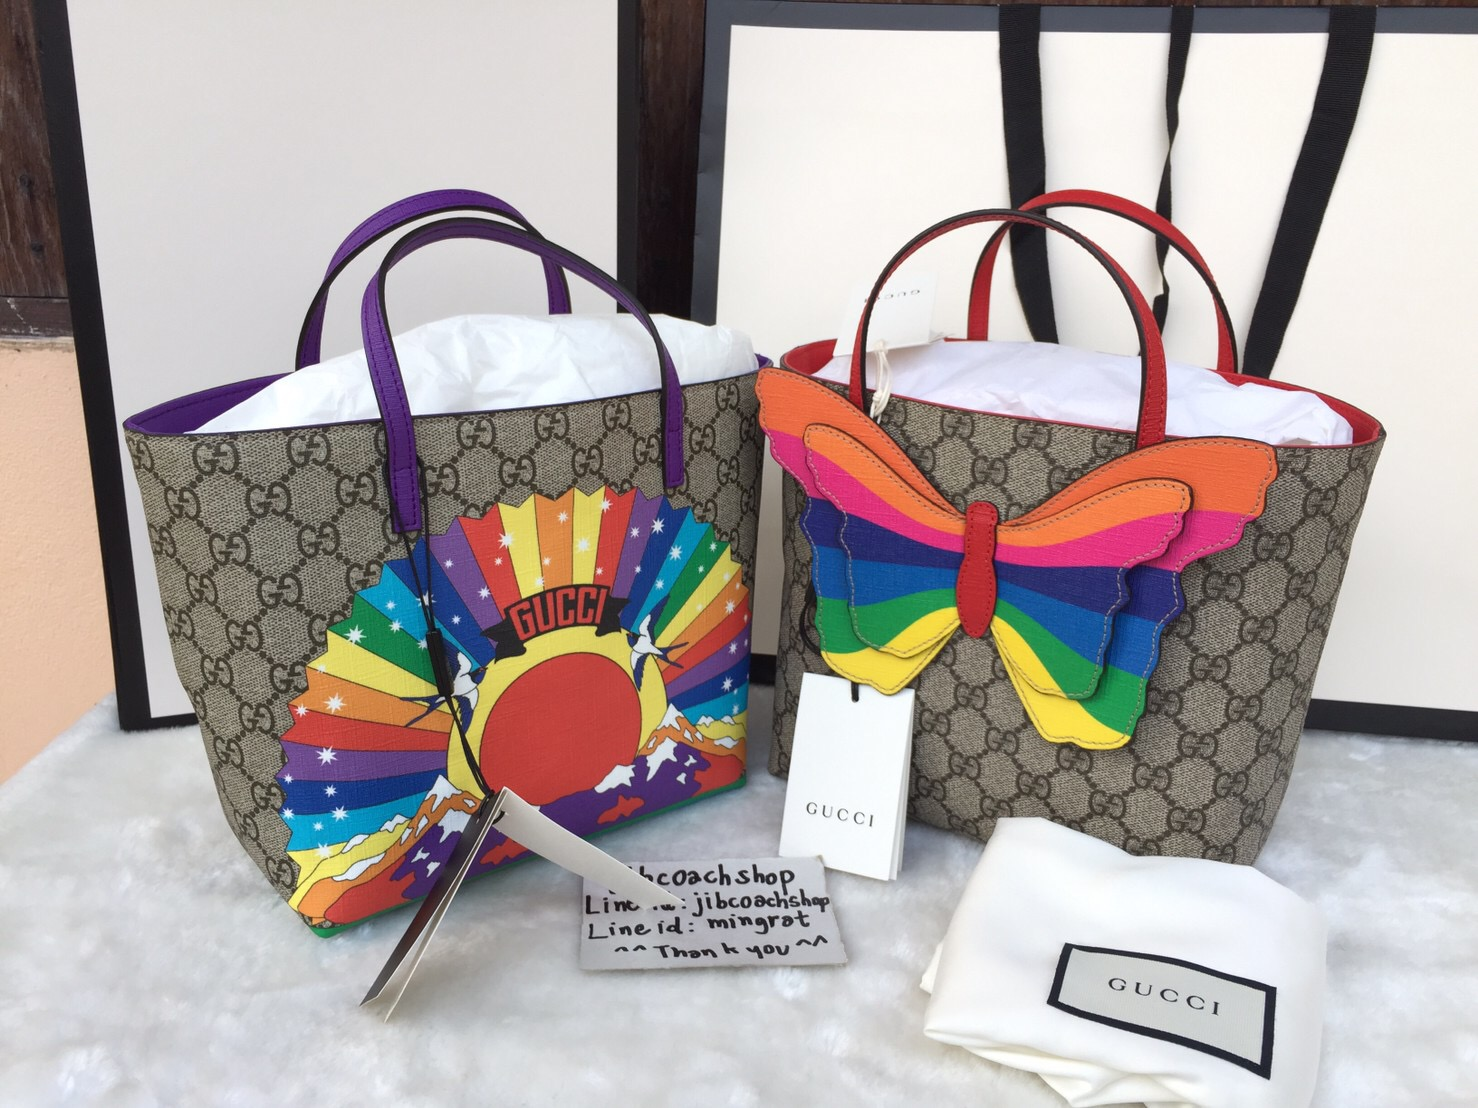 82da42aab12d พร้อมส่ง Gucci GG Butterfly Tote - jibcoachshop : Inspired by ...